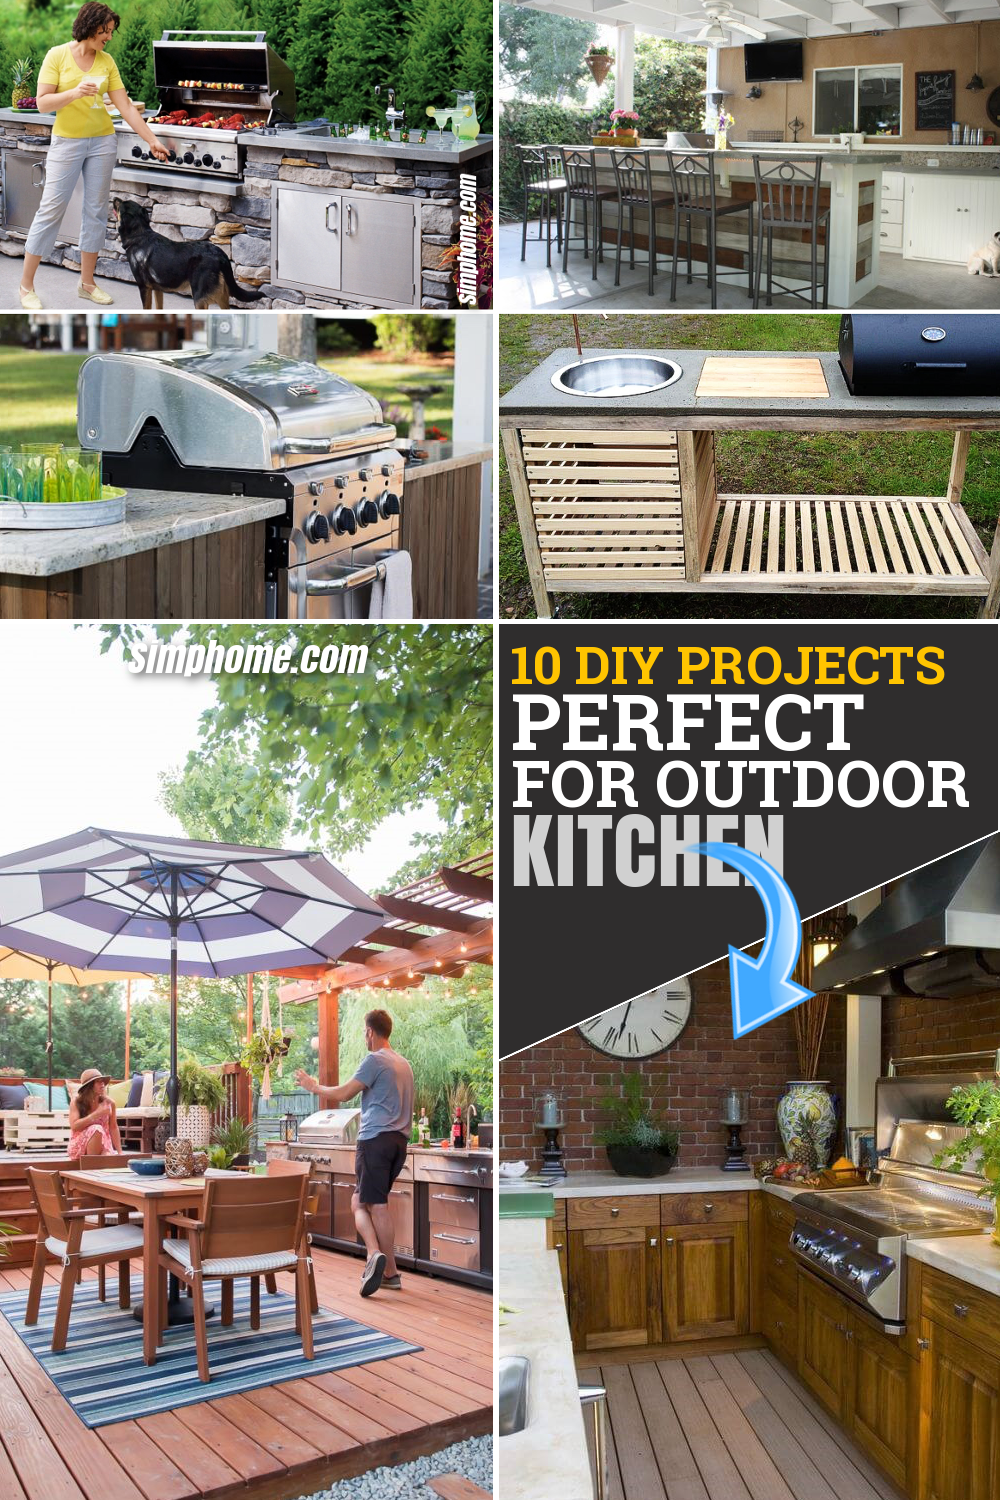 10 DIY Projects Perfect for Your Outdoor Kitchen via Simphome.com Featured Pinterest Image